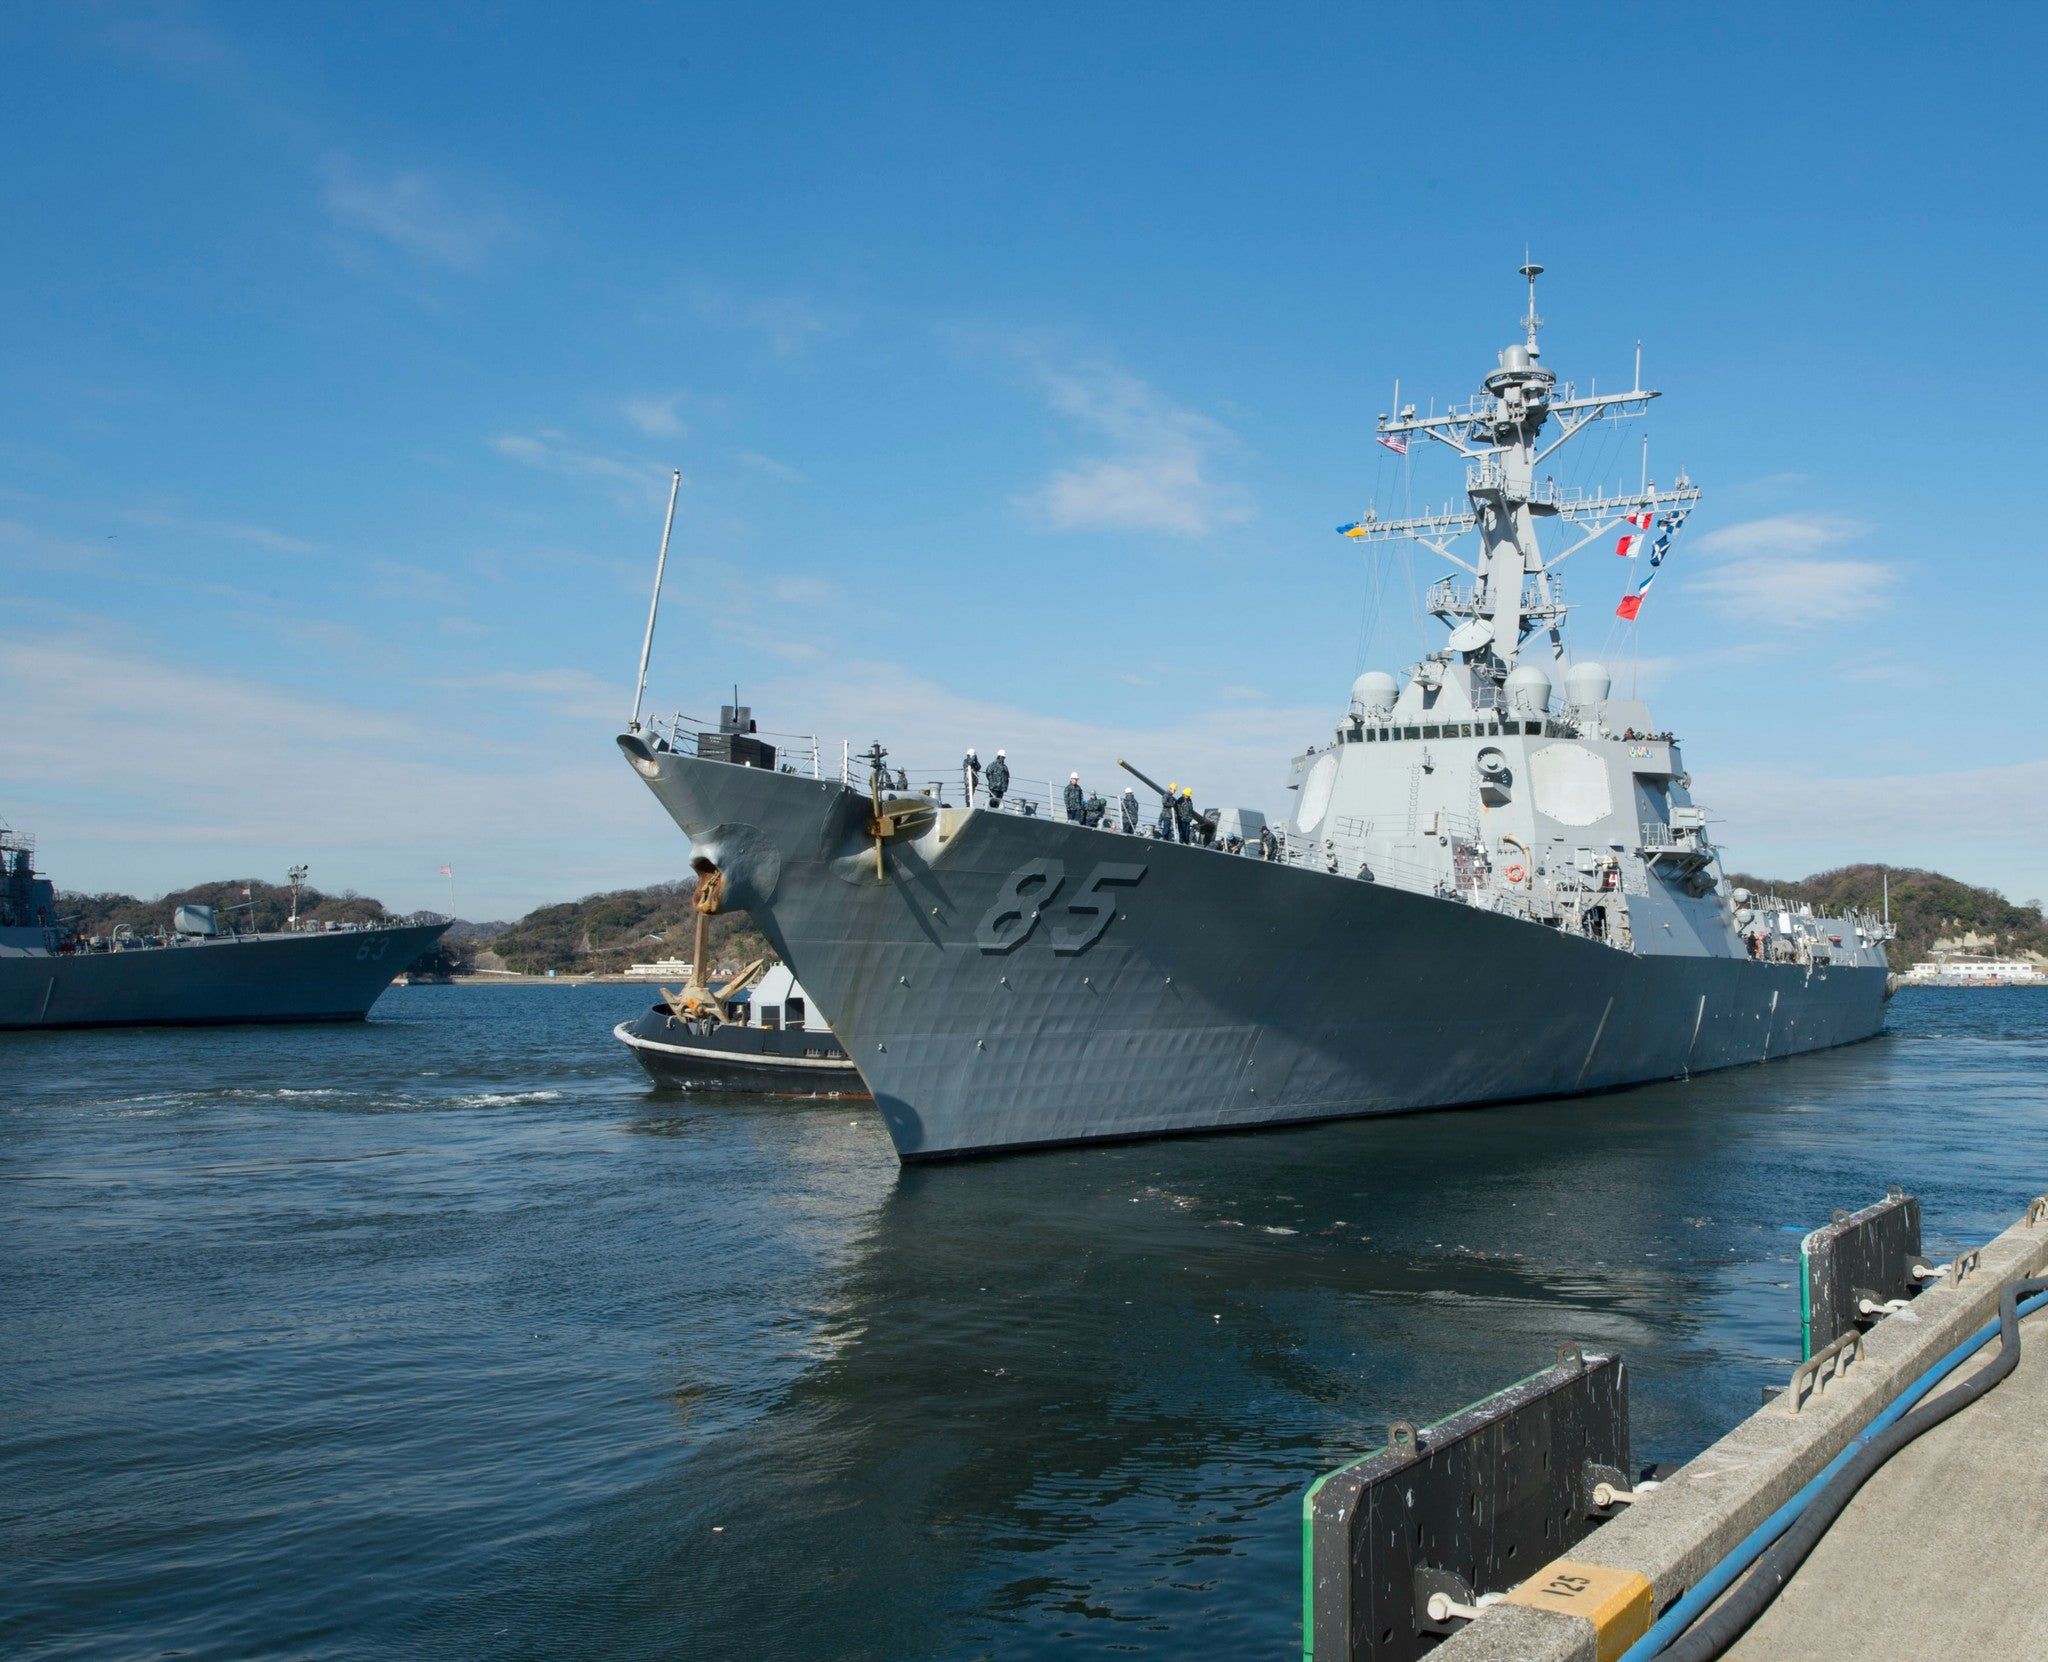 "USS McCampbell DDG-85 Yokosuka, Japan January 16, 2014 - 8 x 10"" Photograph"